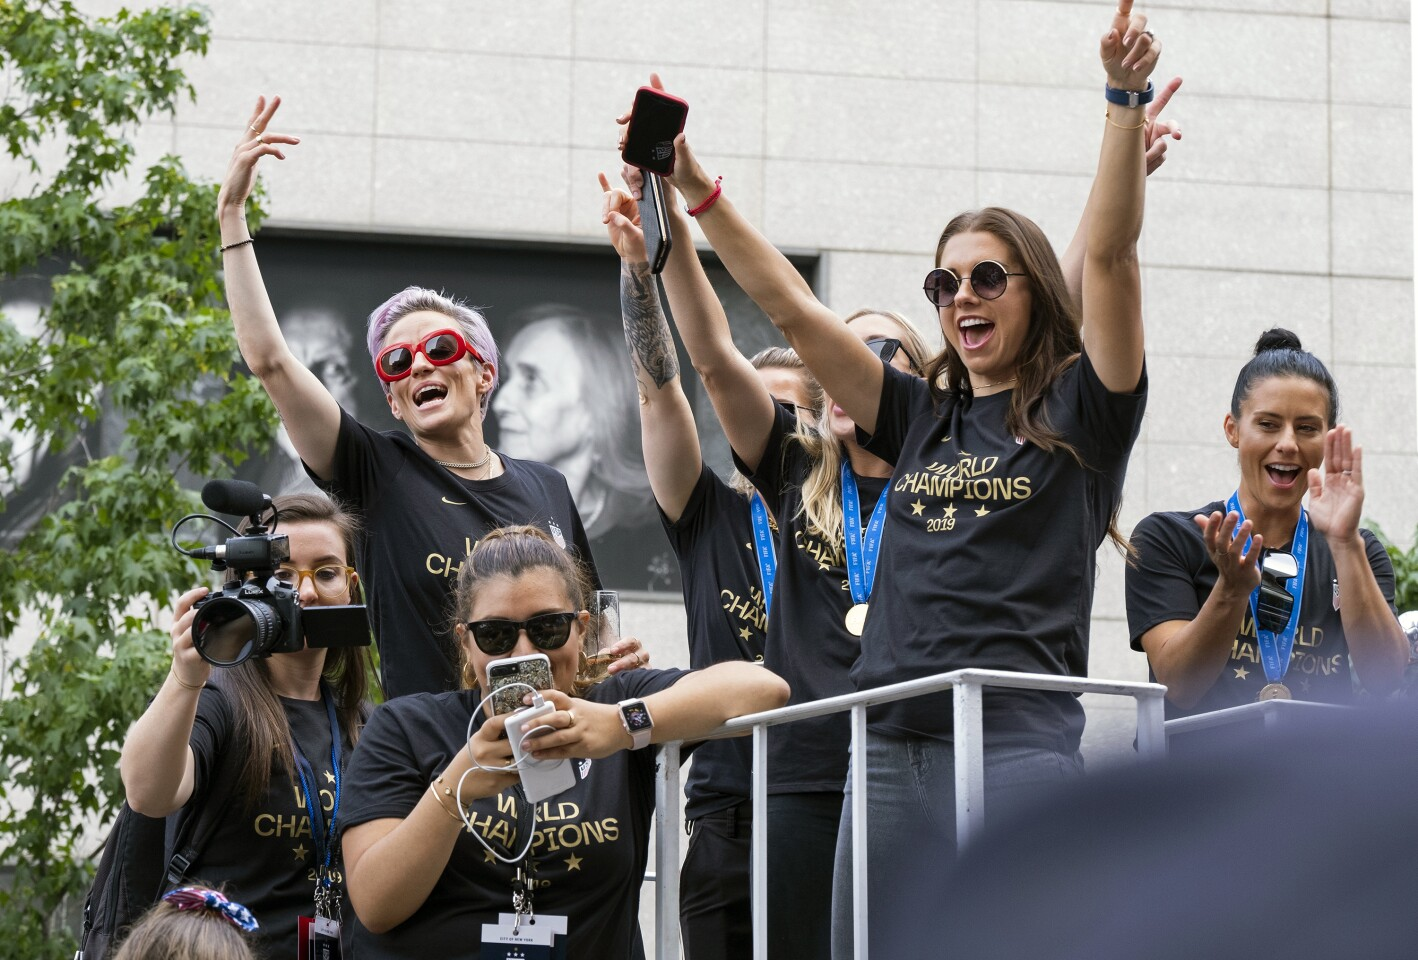 Member of the U.S. women's soccer team, including Megan Rapinoe, rear left, and Alex Morgan, right foreground, stand on a float before being honored with a ticker tape parade along the Canyon of Heroes in New York.